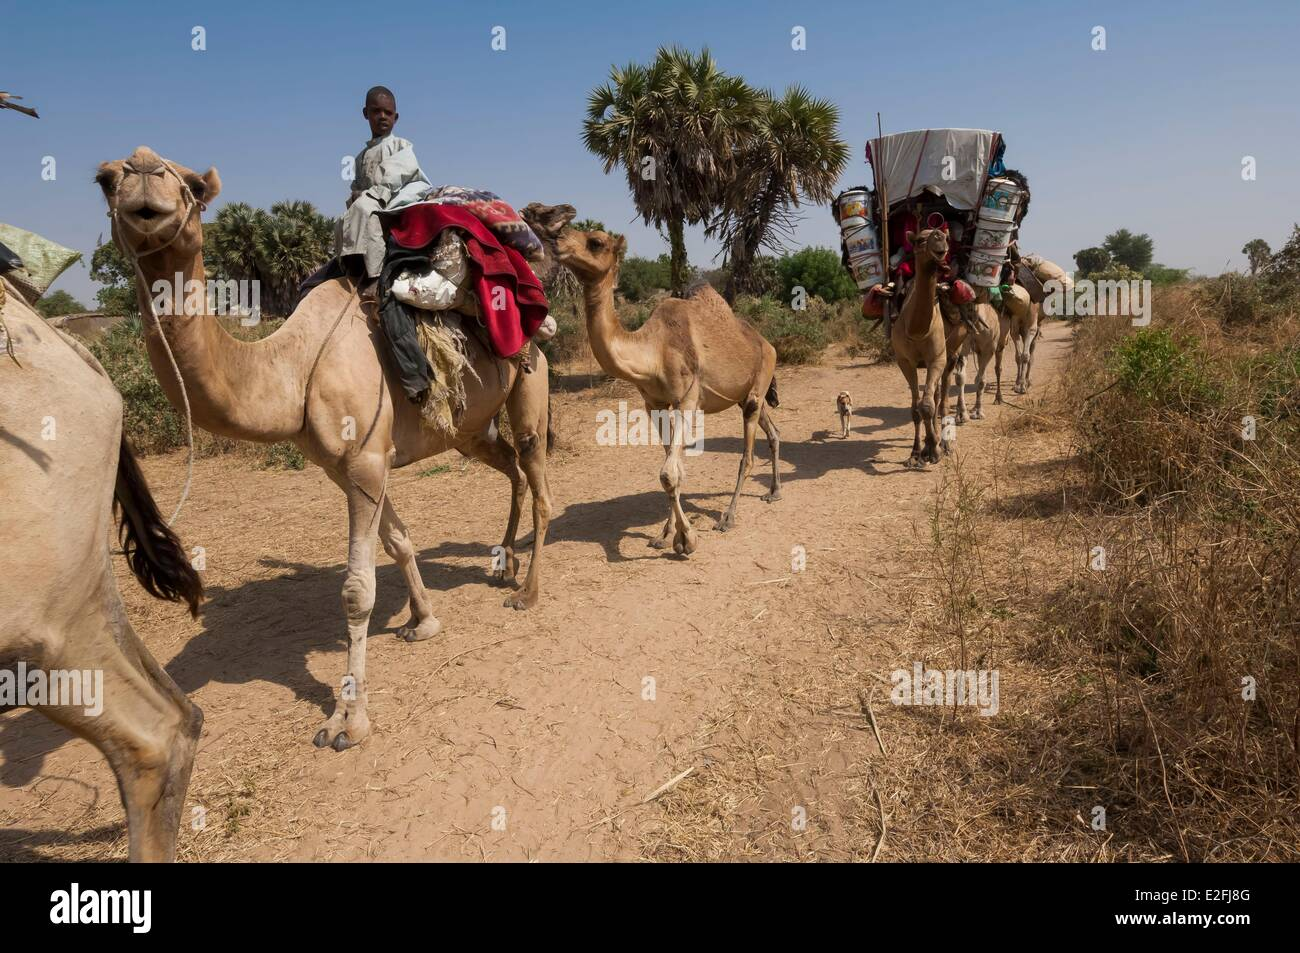 Chad, Sahel, Madoubou savannah, migration of the arab nomads, with their camels - Stock Image